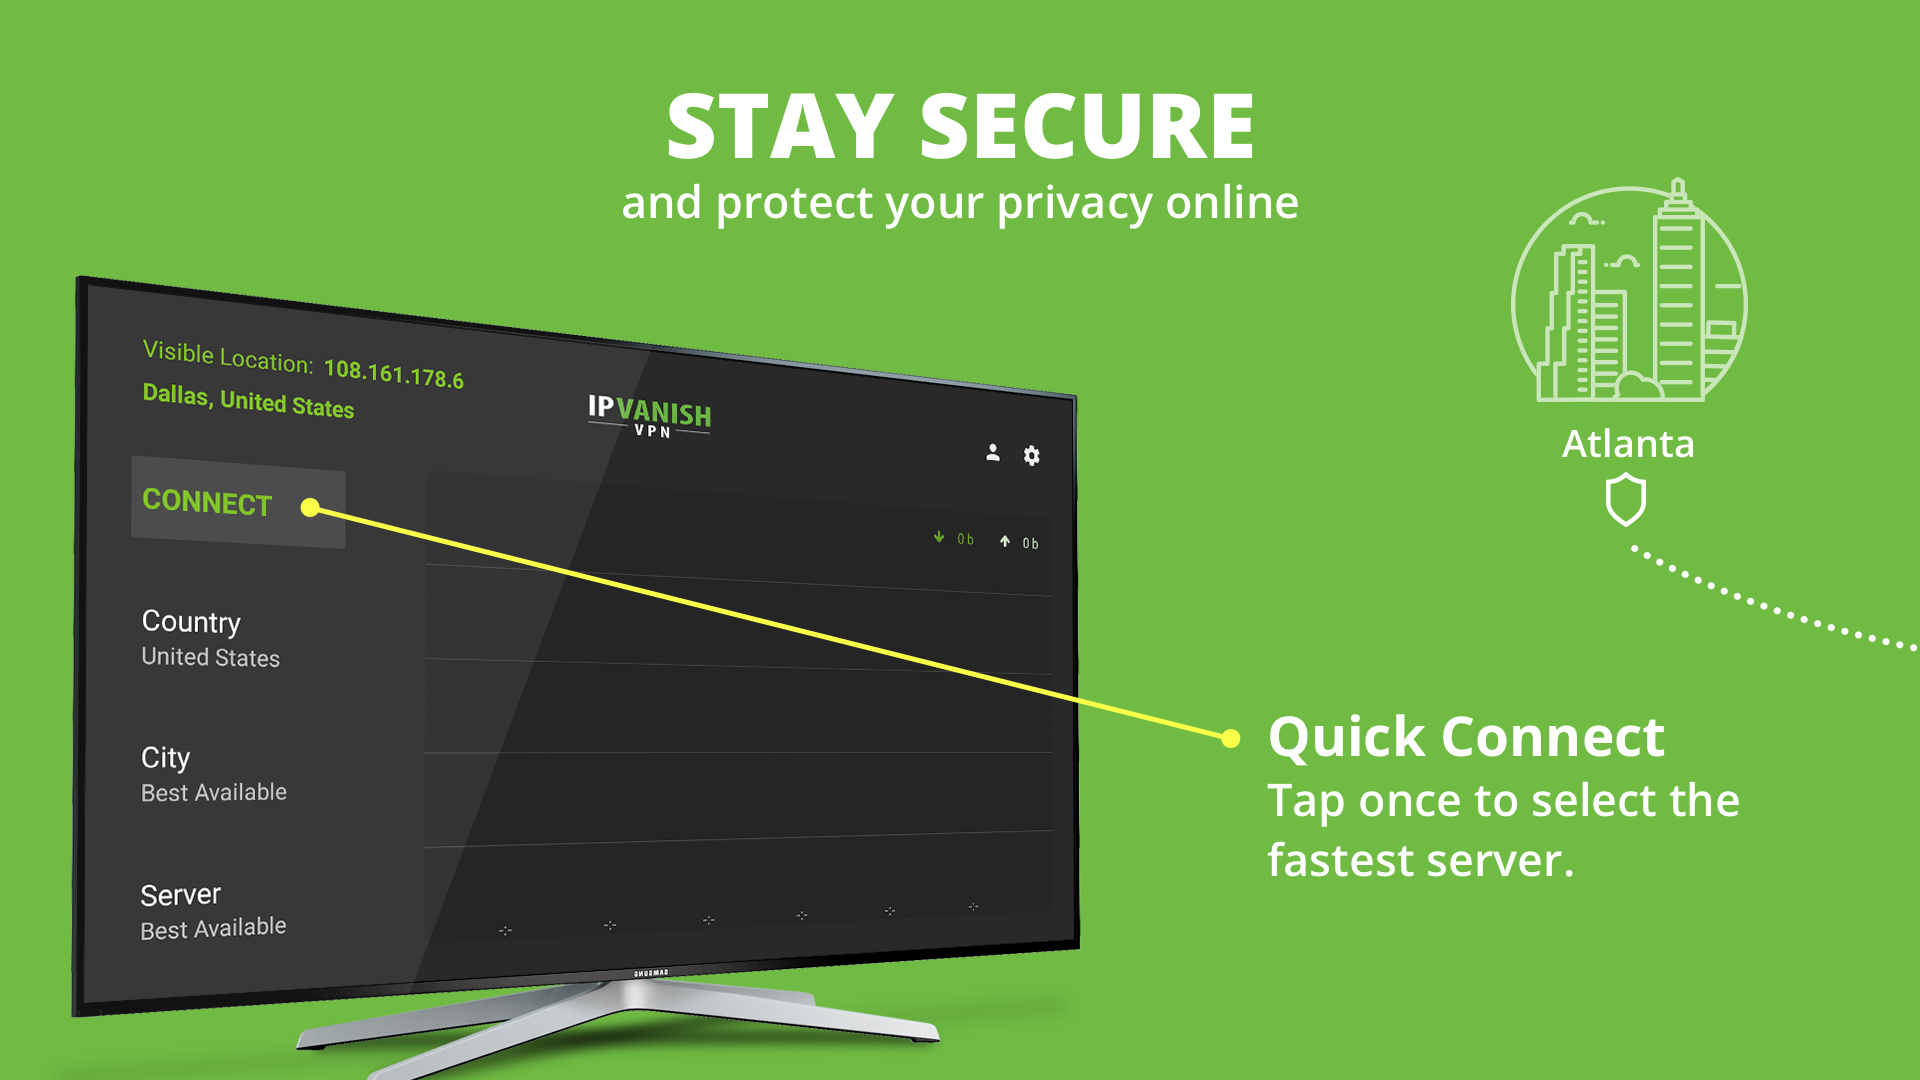 For Under 200 Ip Vanish VPN